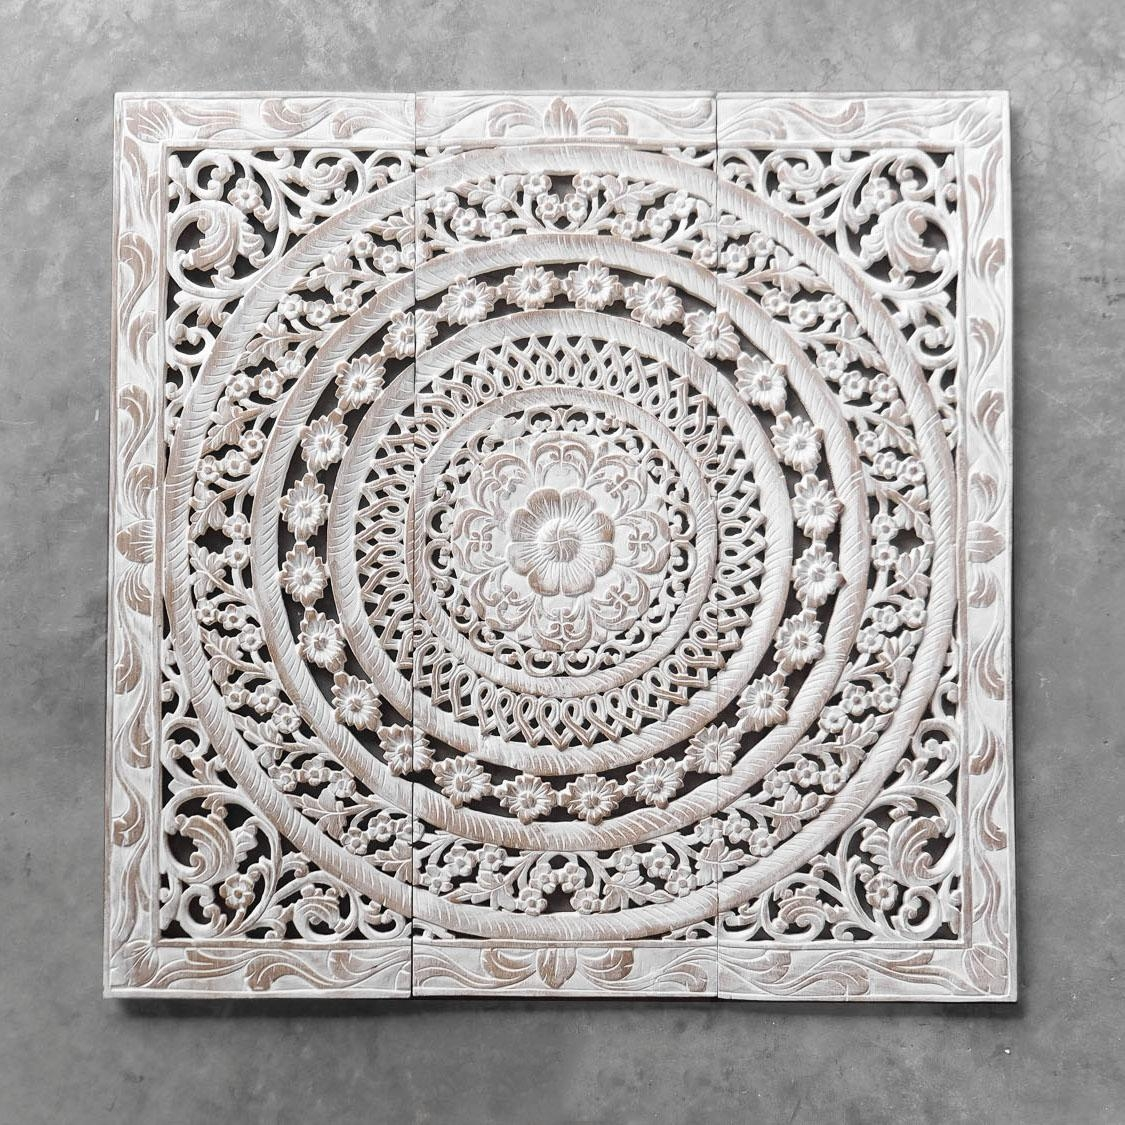 Moroccan Decent Wood Carving Wall Art Hanging – Siam Sawadee With Wood Panel Wall Art (Image 8 of 20)